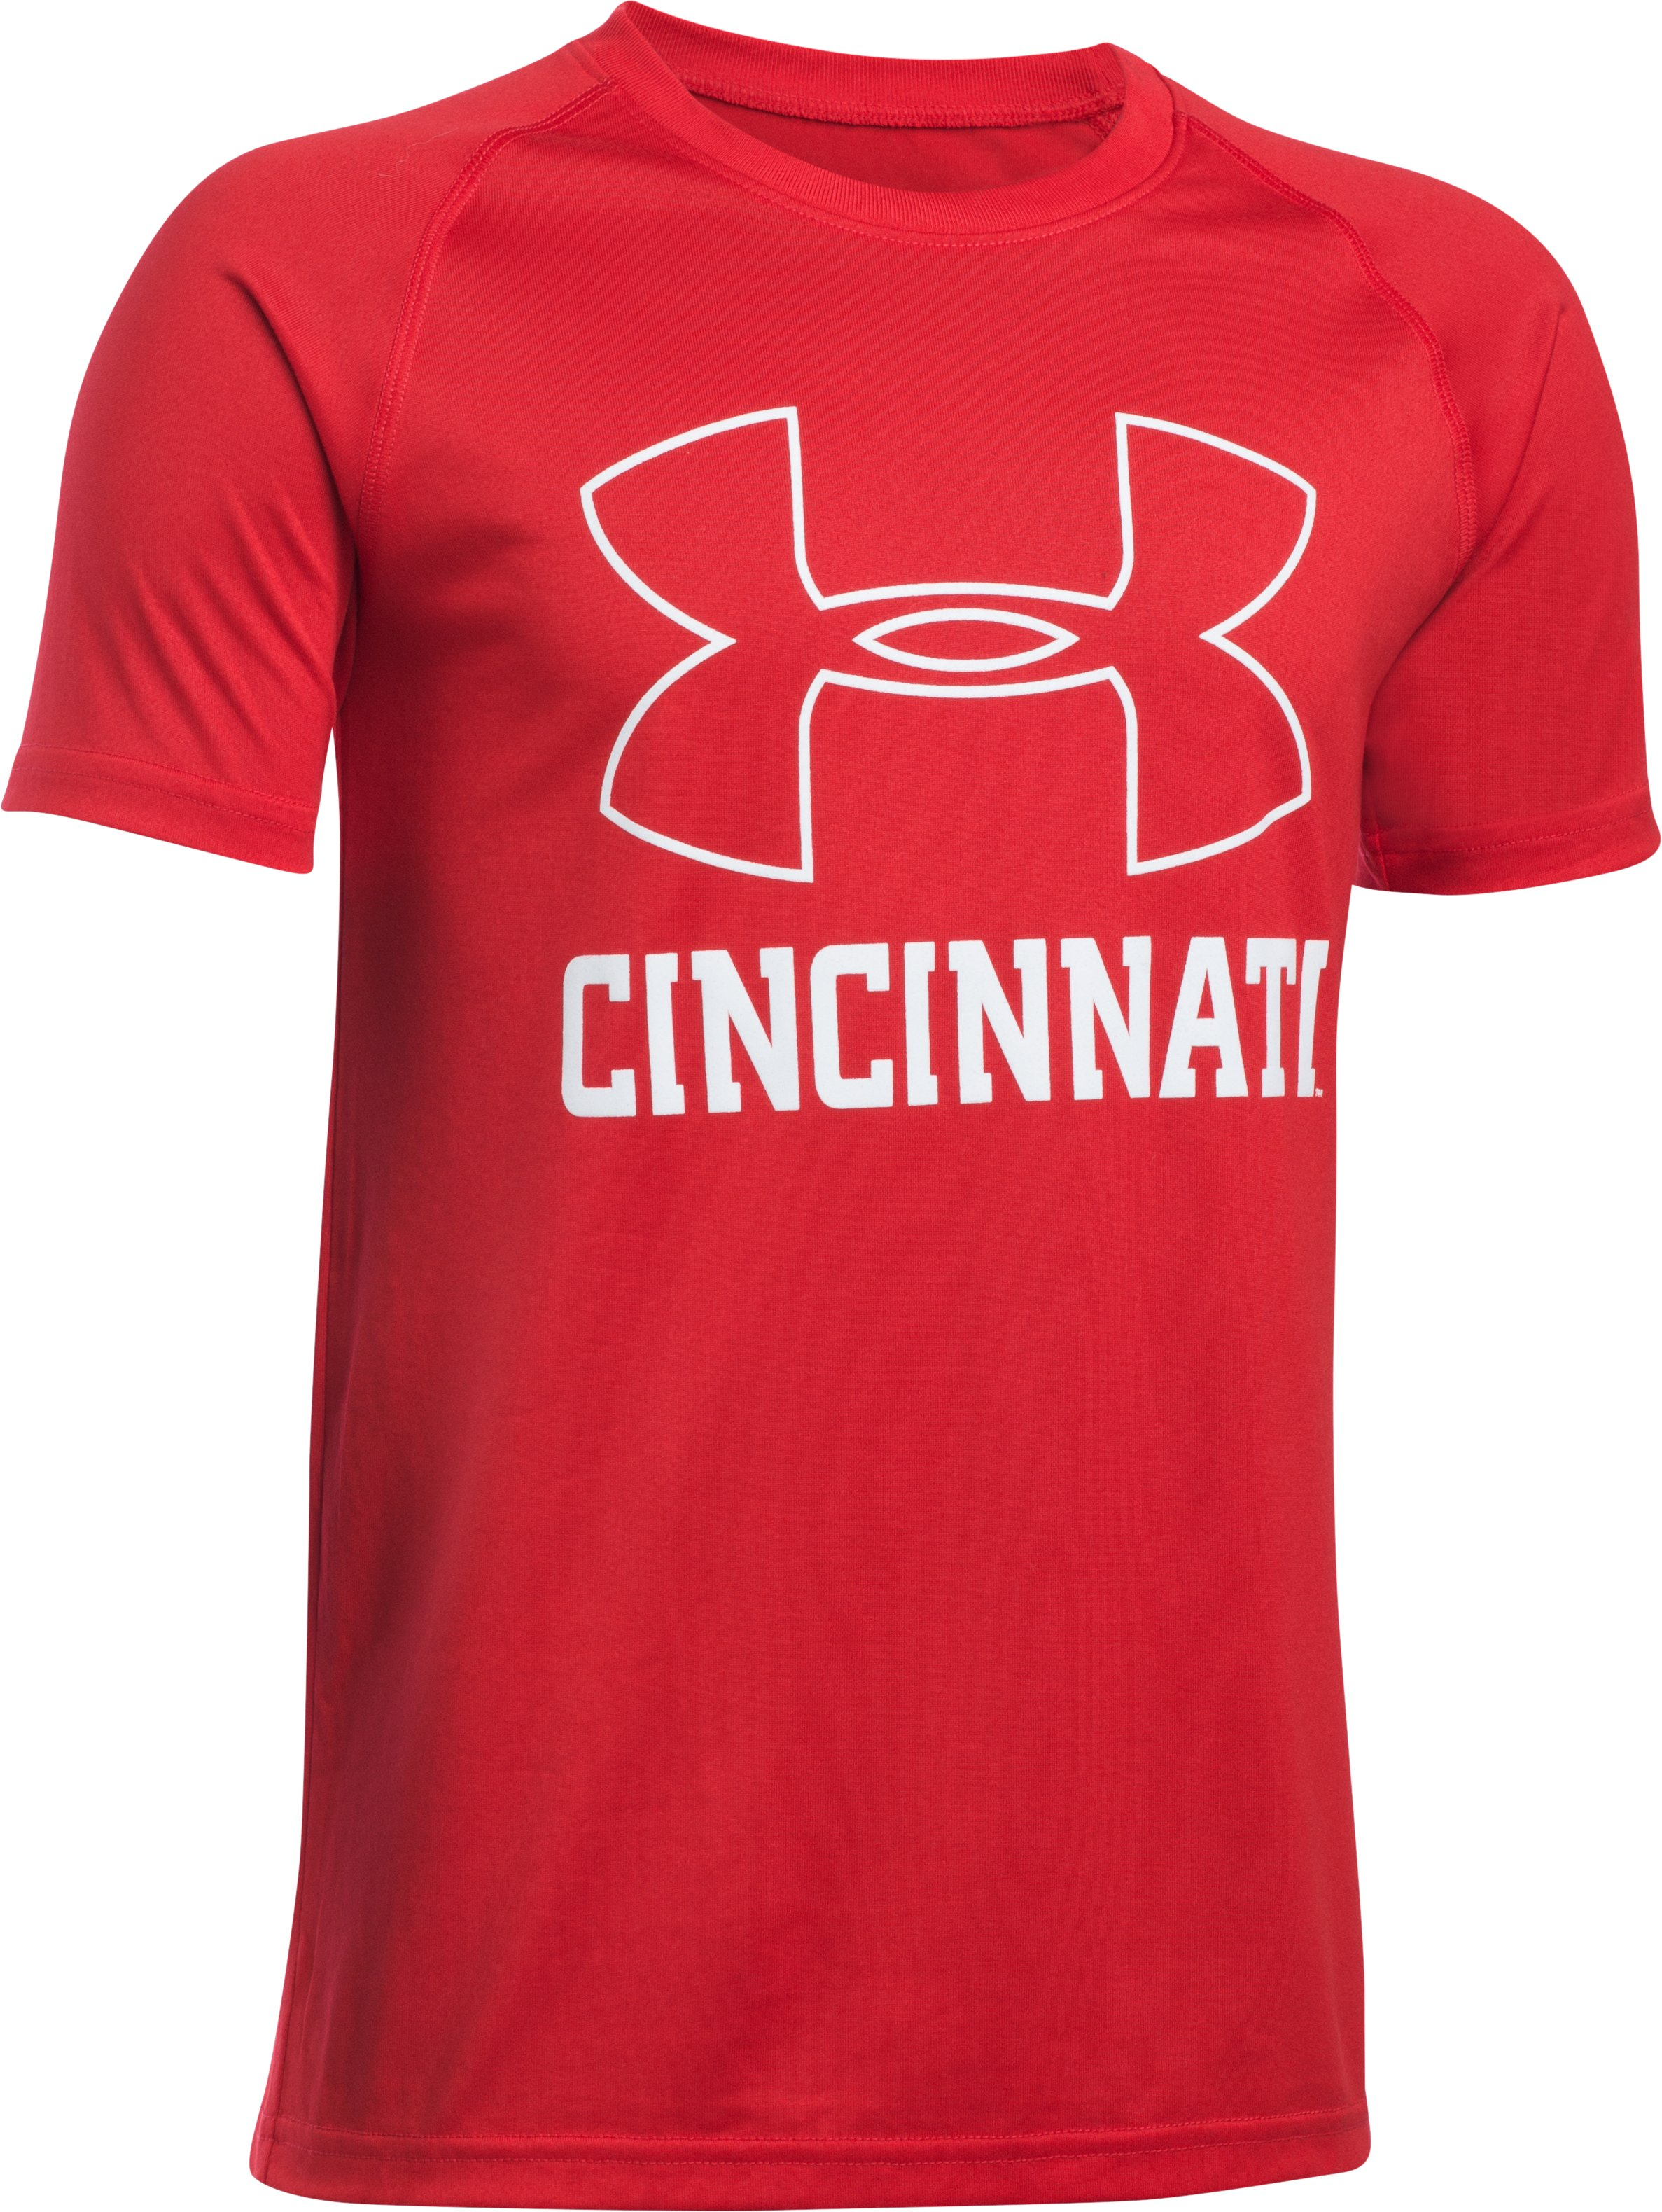 Boys' Cincinnati Charged Cotton® T-Shirt, Red